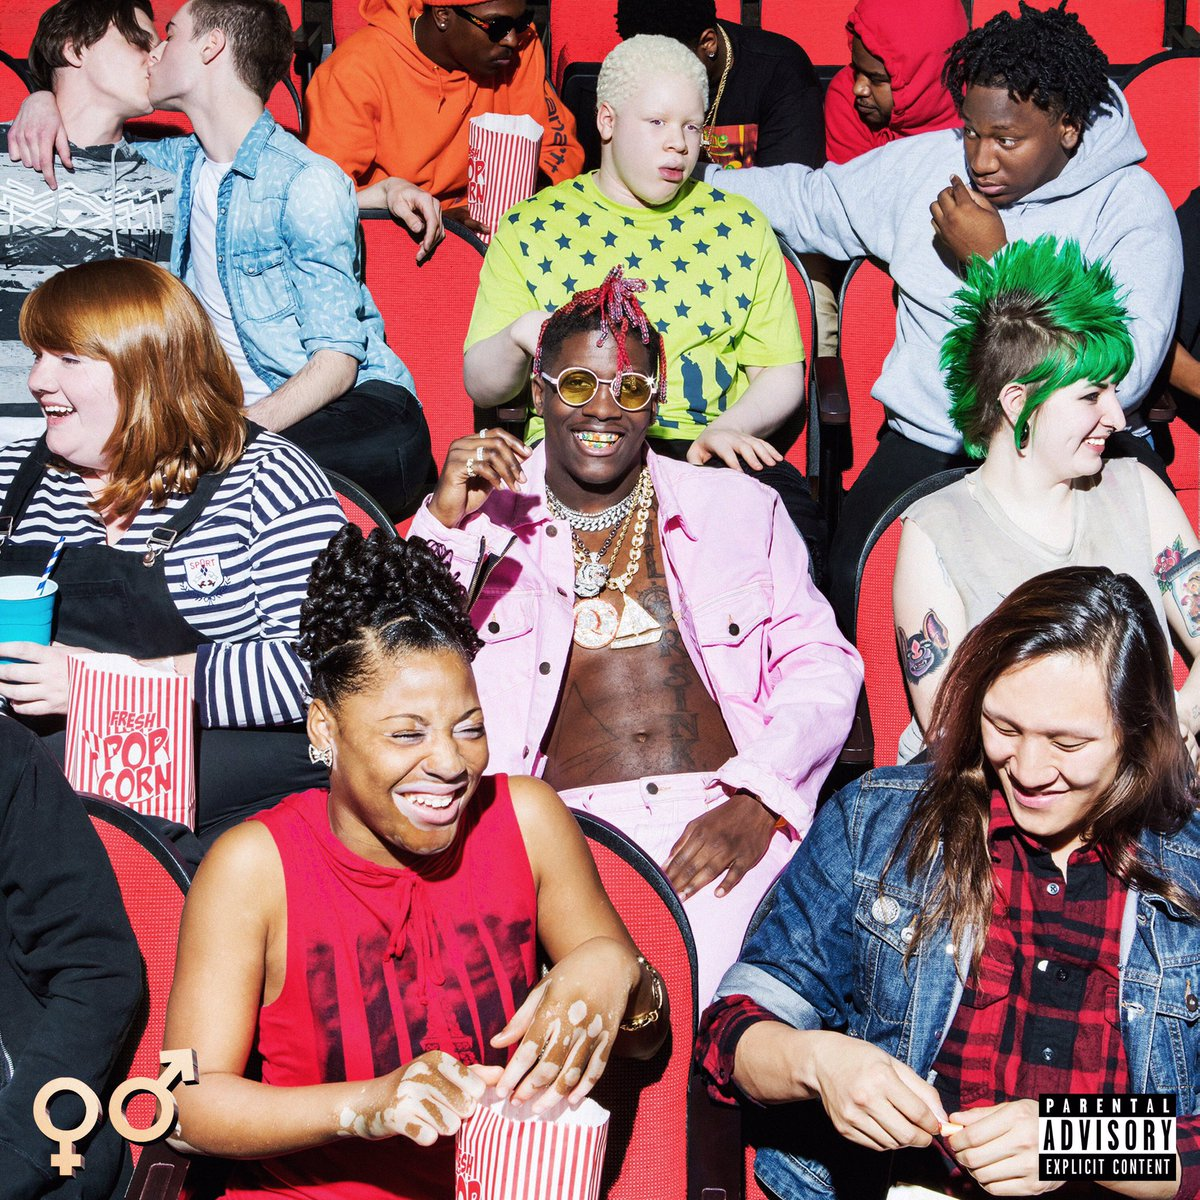 Lil Yachty's New Album Cover Captures Diversity